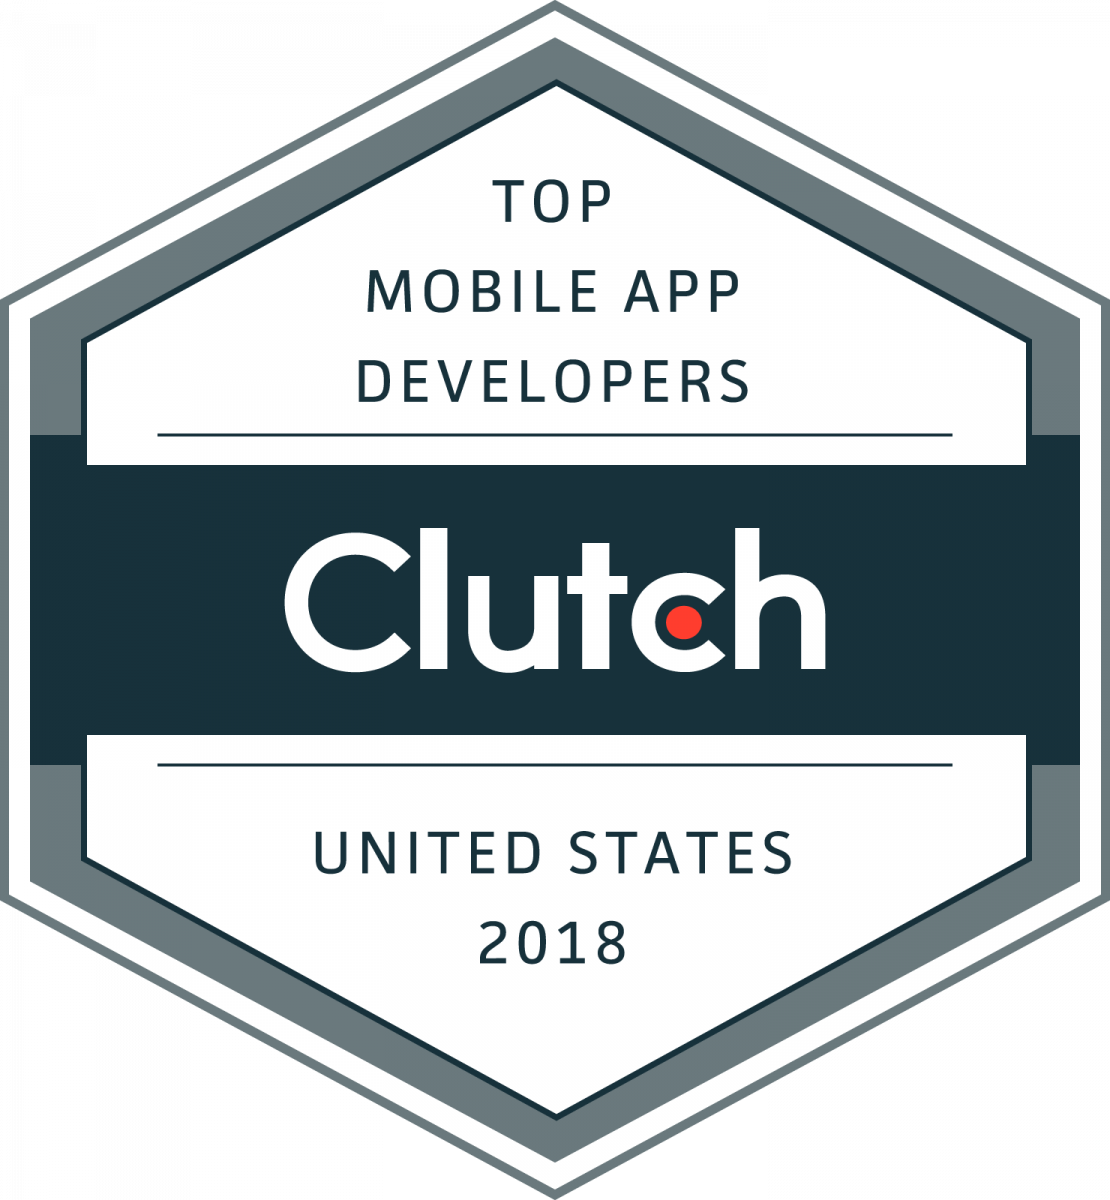 clutch_mobile_app_dev_usa_2018.png